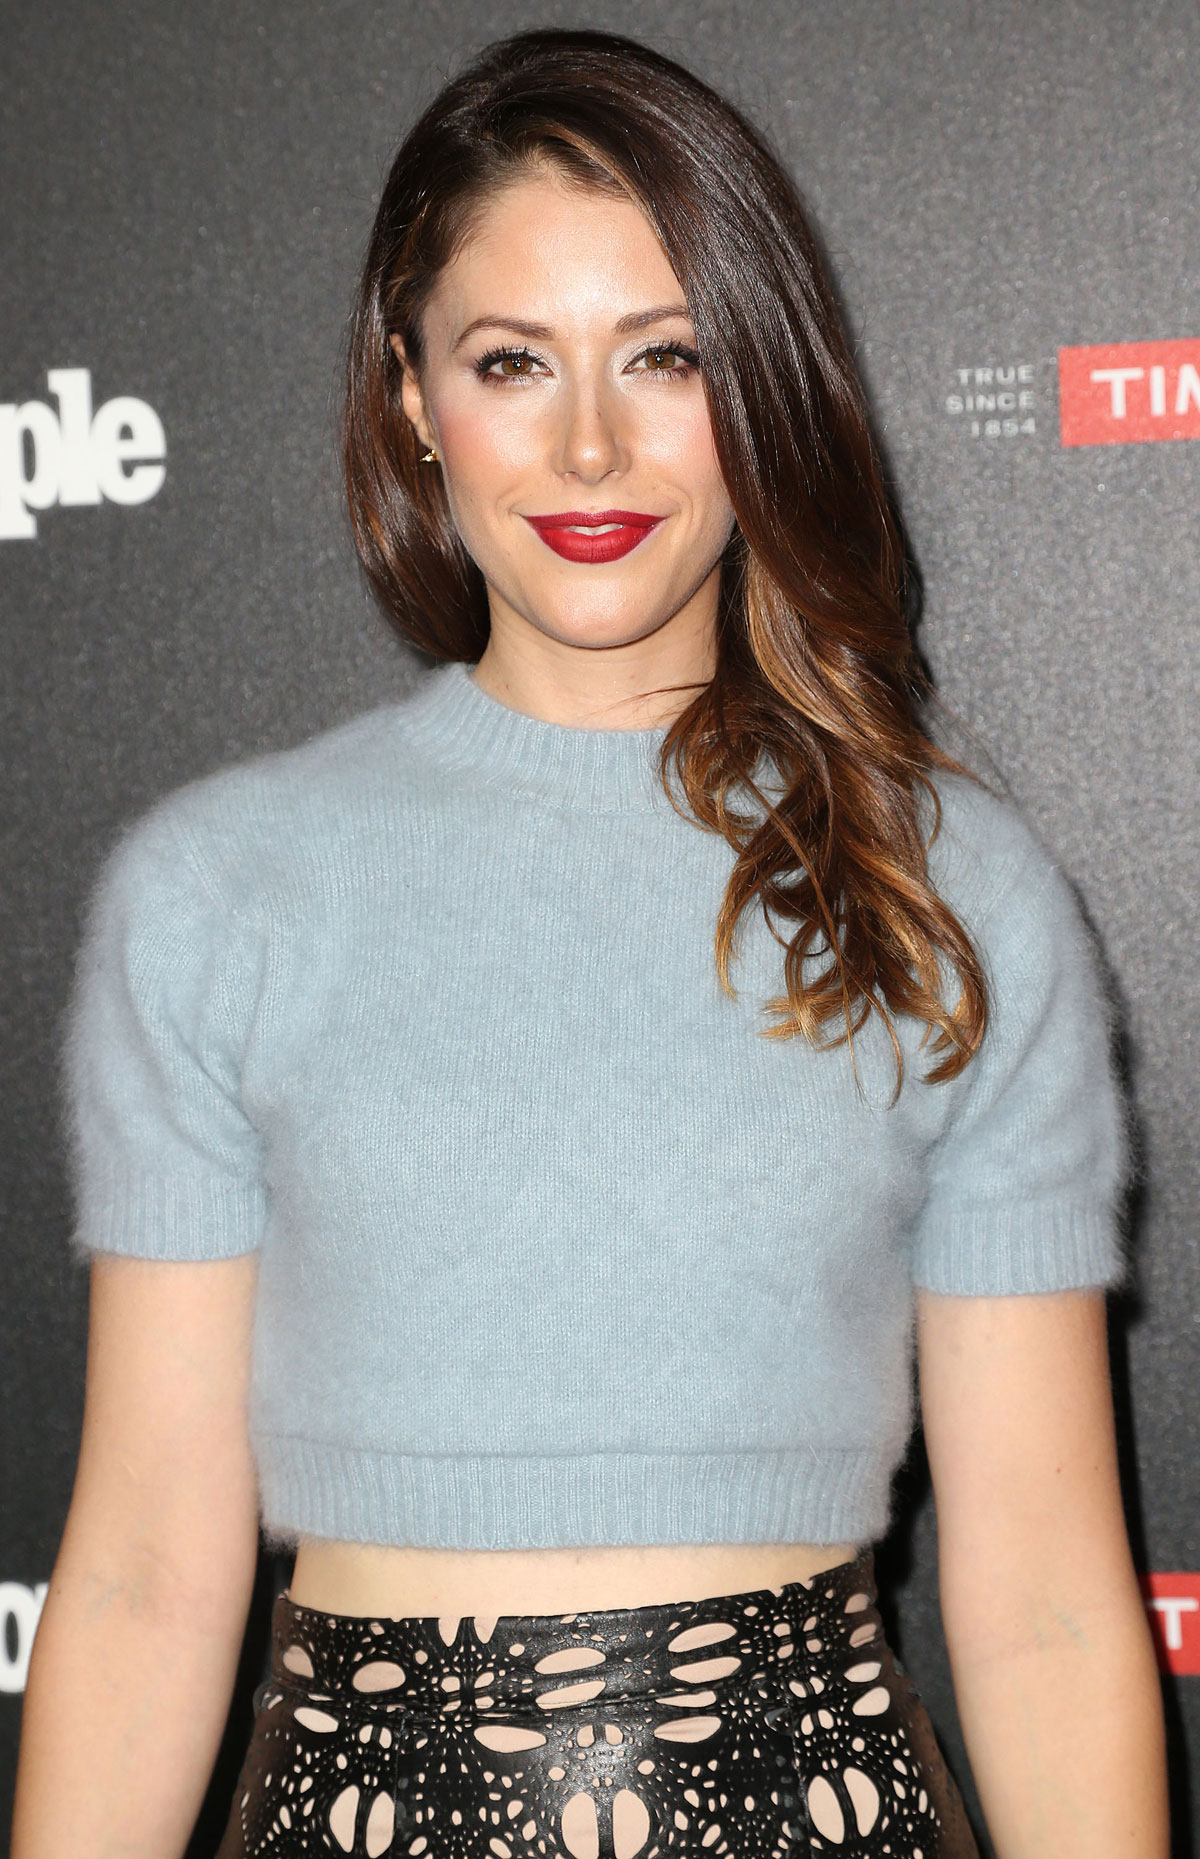 Amanda Crew attends People Ones To Watch Event